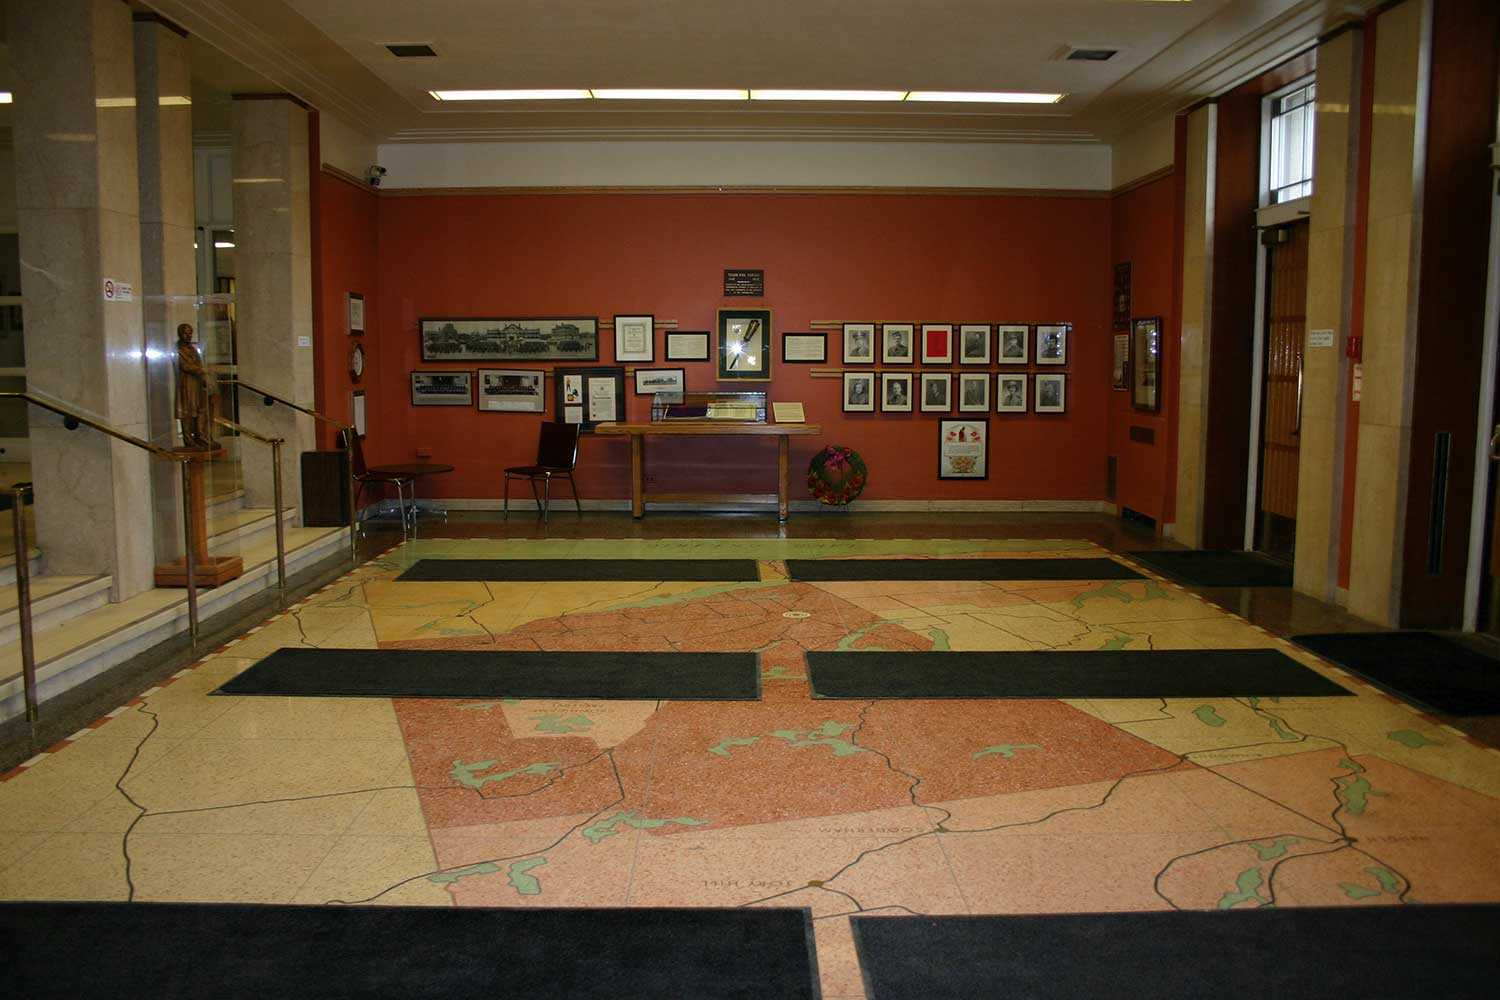 Terrazzo map of Peterborough County in front foyer of Peterborough City Hall Photo: Heritage Preservation Office, Arts, Culture and Heritage Division, City of Peterborough